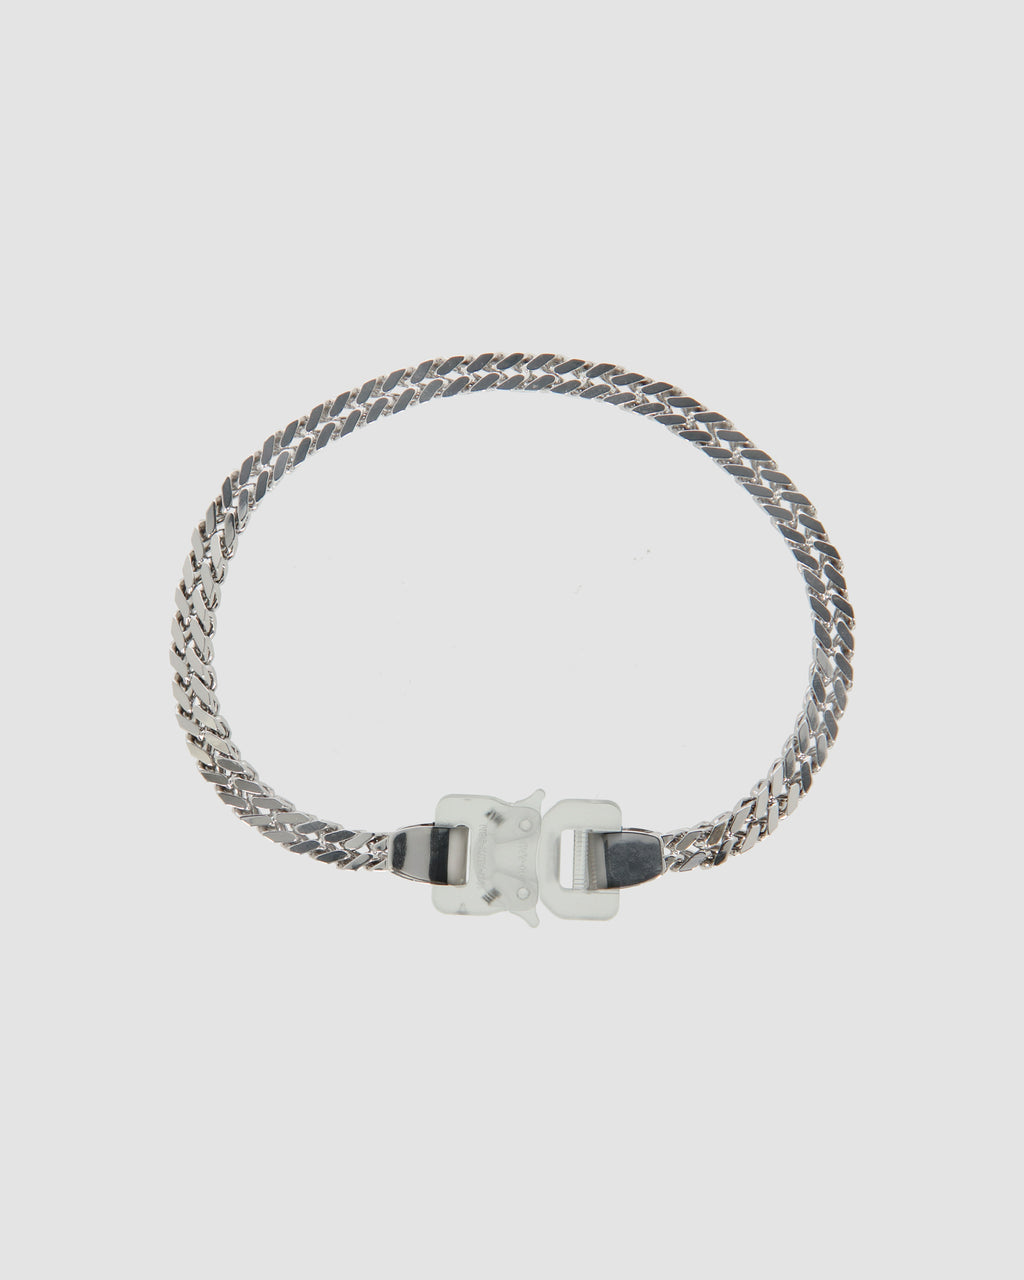 1017 ALYX 9SM | KM20 CUBIX CHAIN | Jewellery | Accessories, Google Shopping, JEWELLERY, jewelry, KM20, Man, S20, Silver, UNISEX, Woman